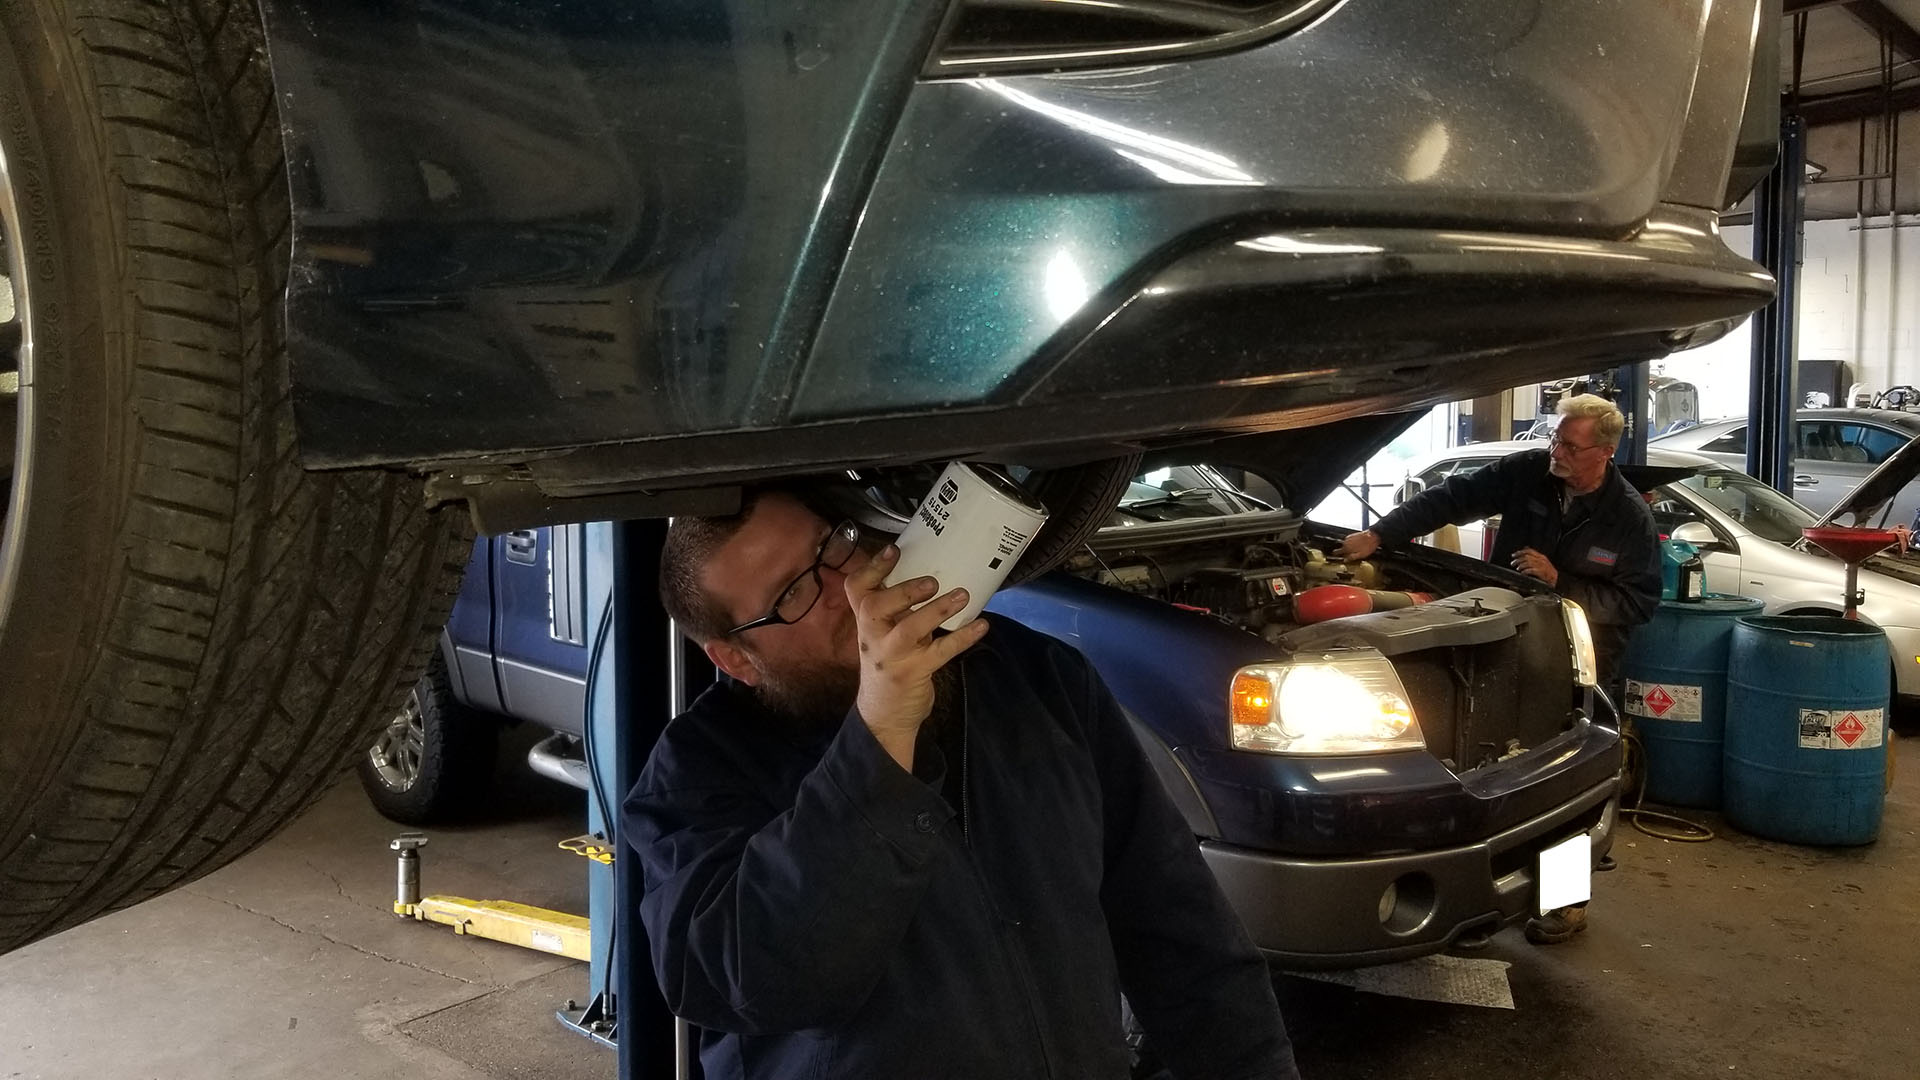 Why should I get an oil change at Steve's Auto Repair?